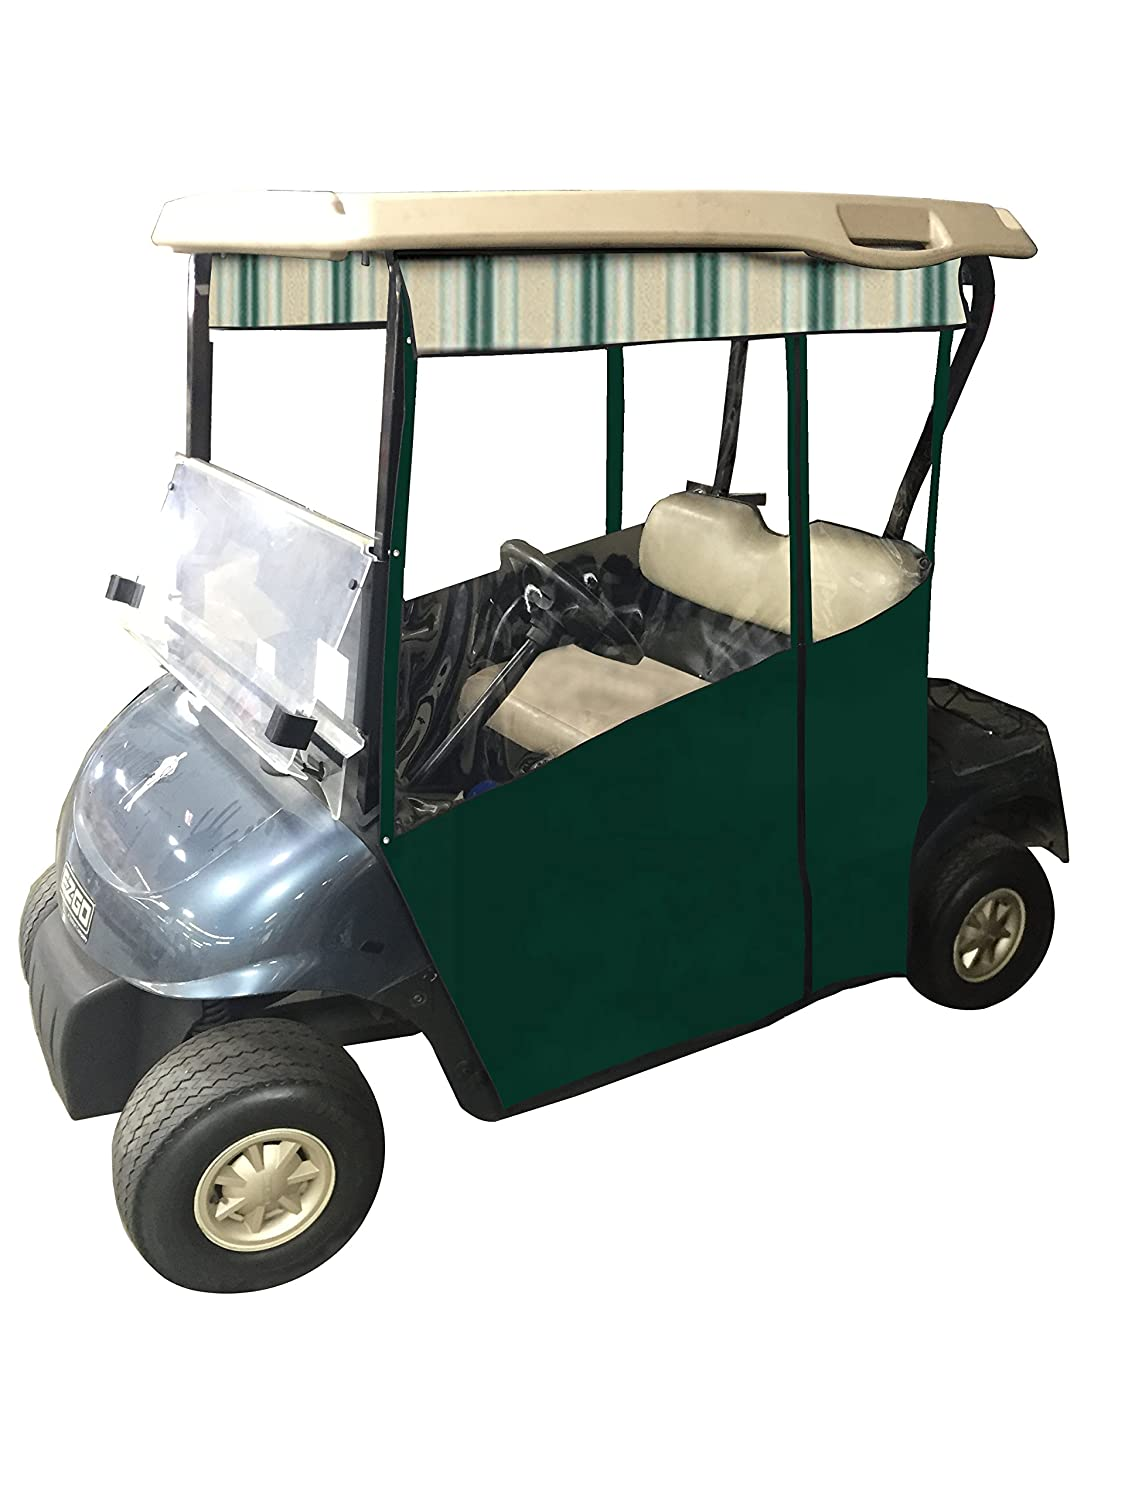 Track Style Golf Cart Enclosure In Sunbrella Canvas Yamaha G1a Wiring Diagram Slide On Cover Ezgo Txt Rxv Drive 2 G14 G19 Club Car Onward